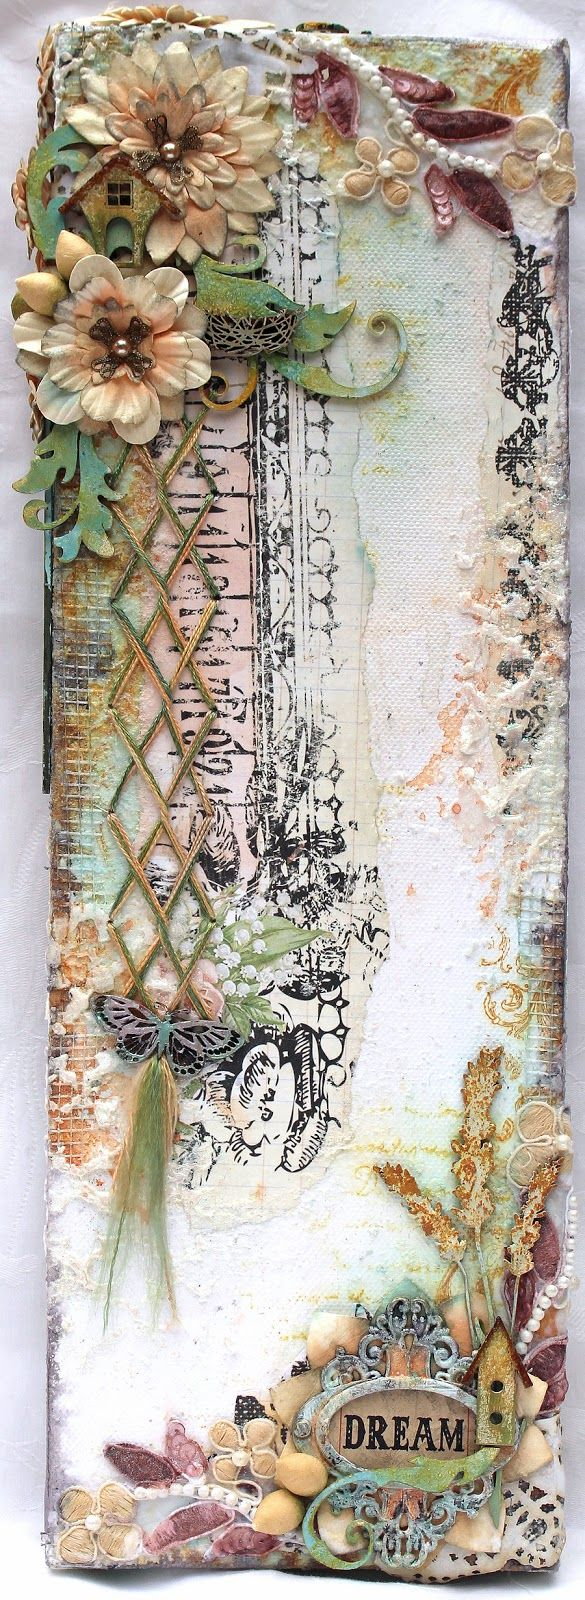 Patricia basson - lovely mixed media canvas!